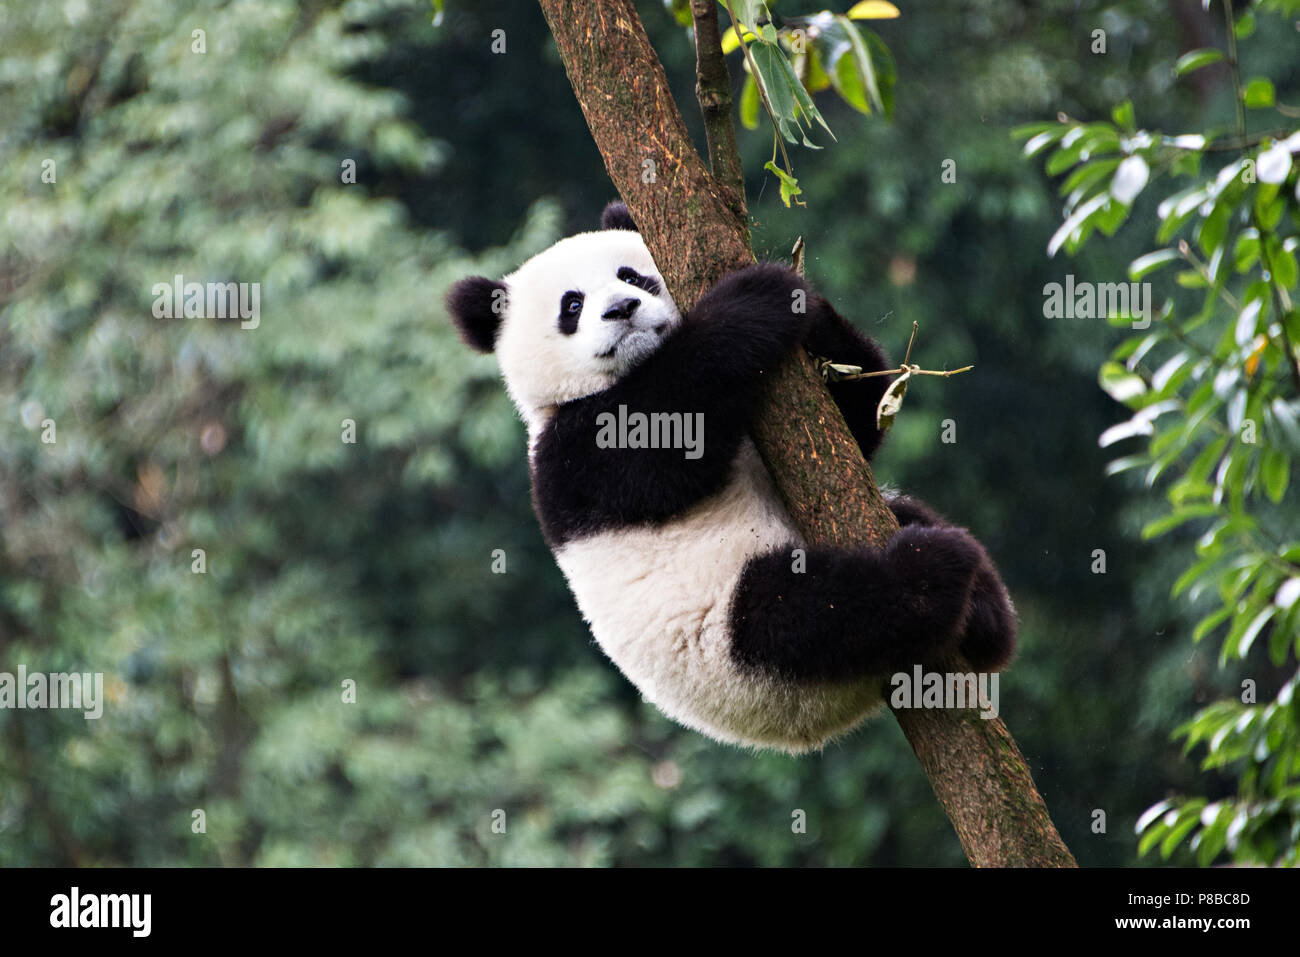 A portrait of a Giant Panda hugging a tree and facing the camera to pose at the Chengdu breeding centre, Chengdu, China - Stock Image